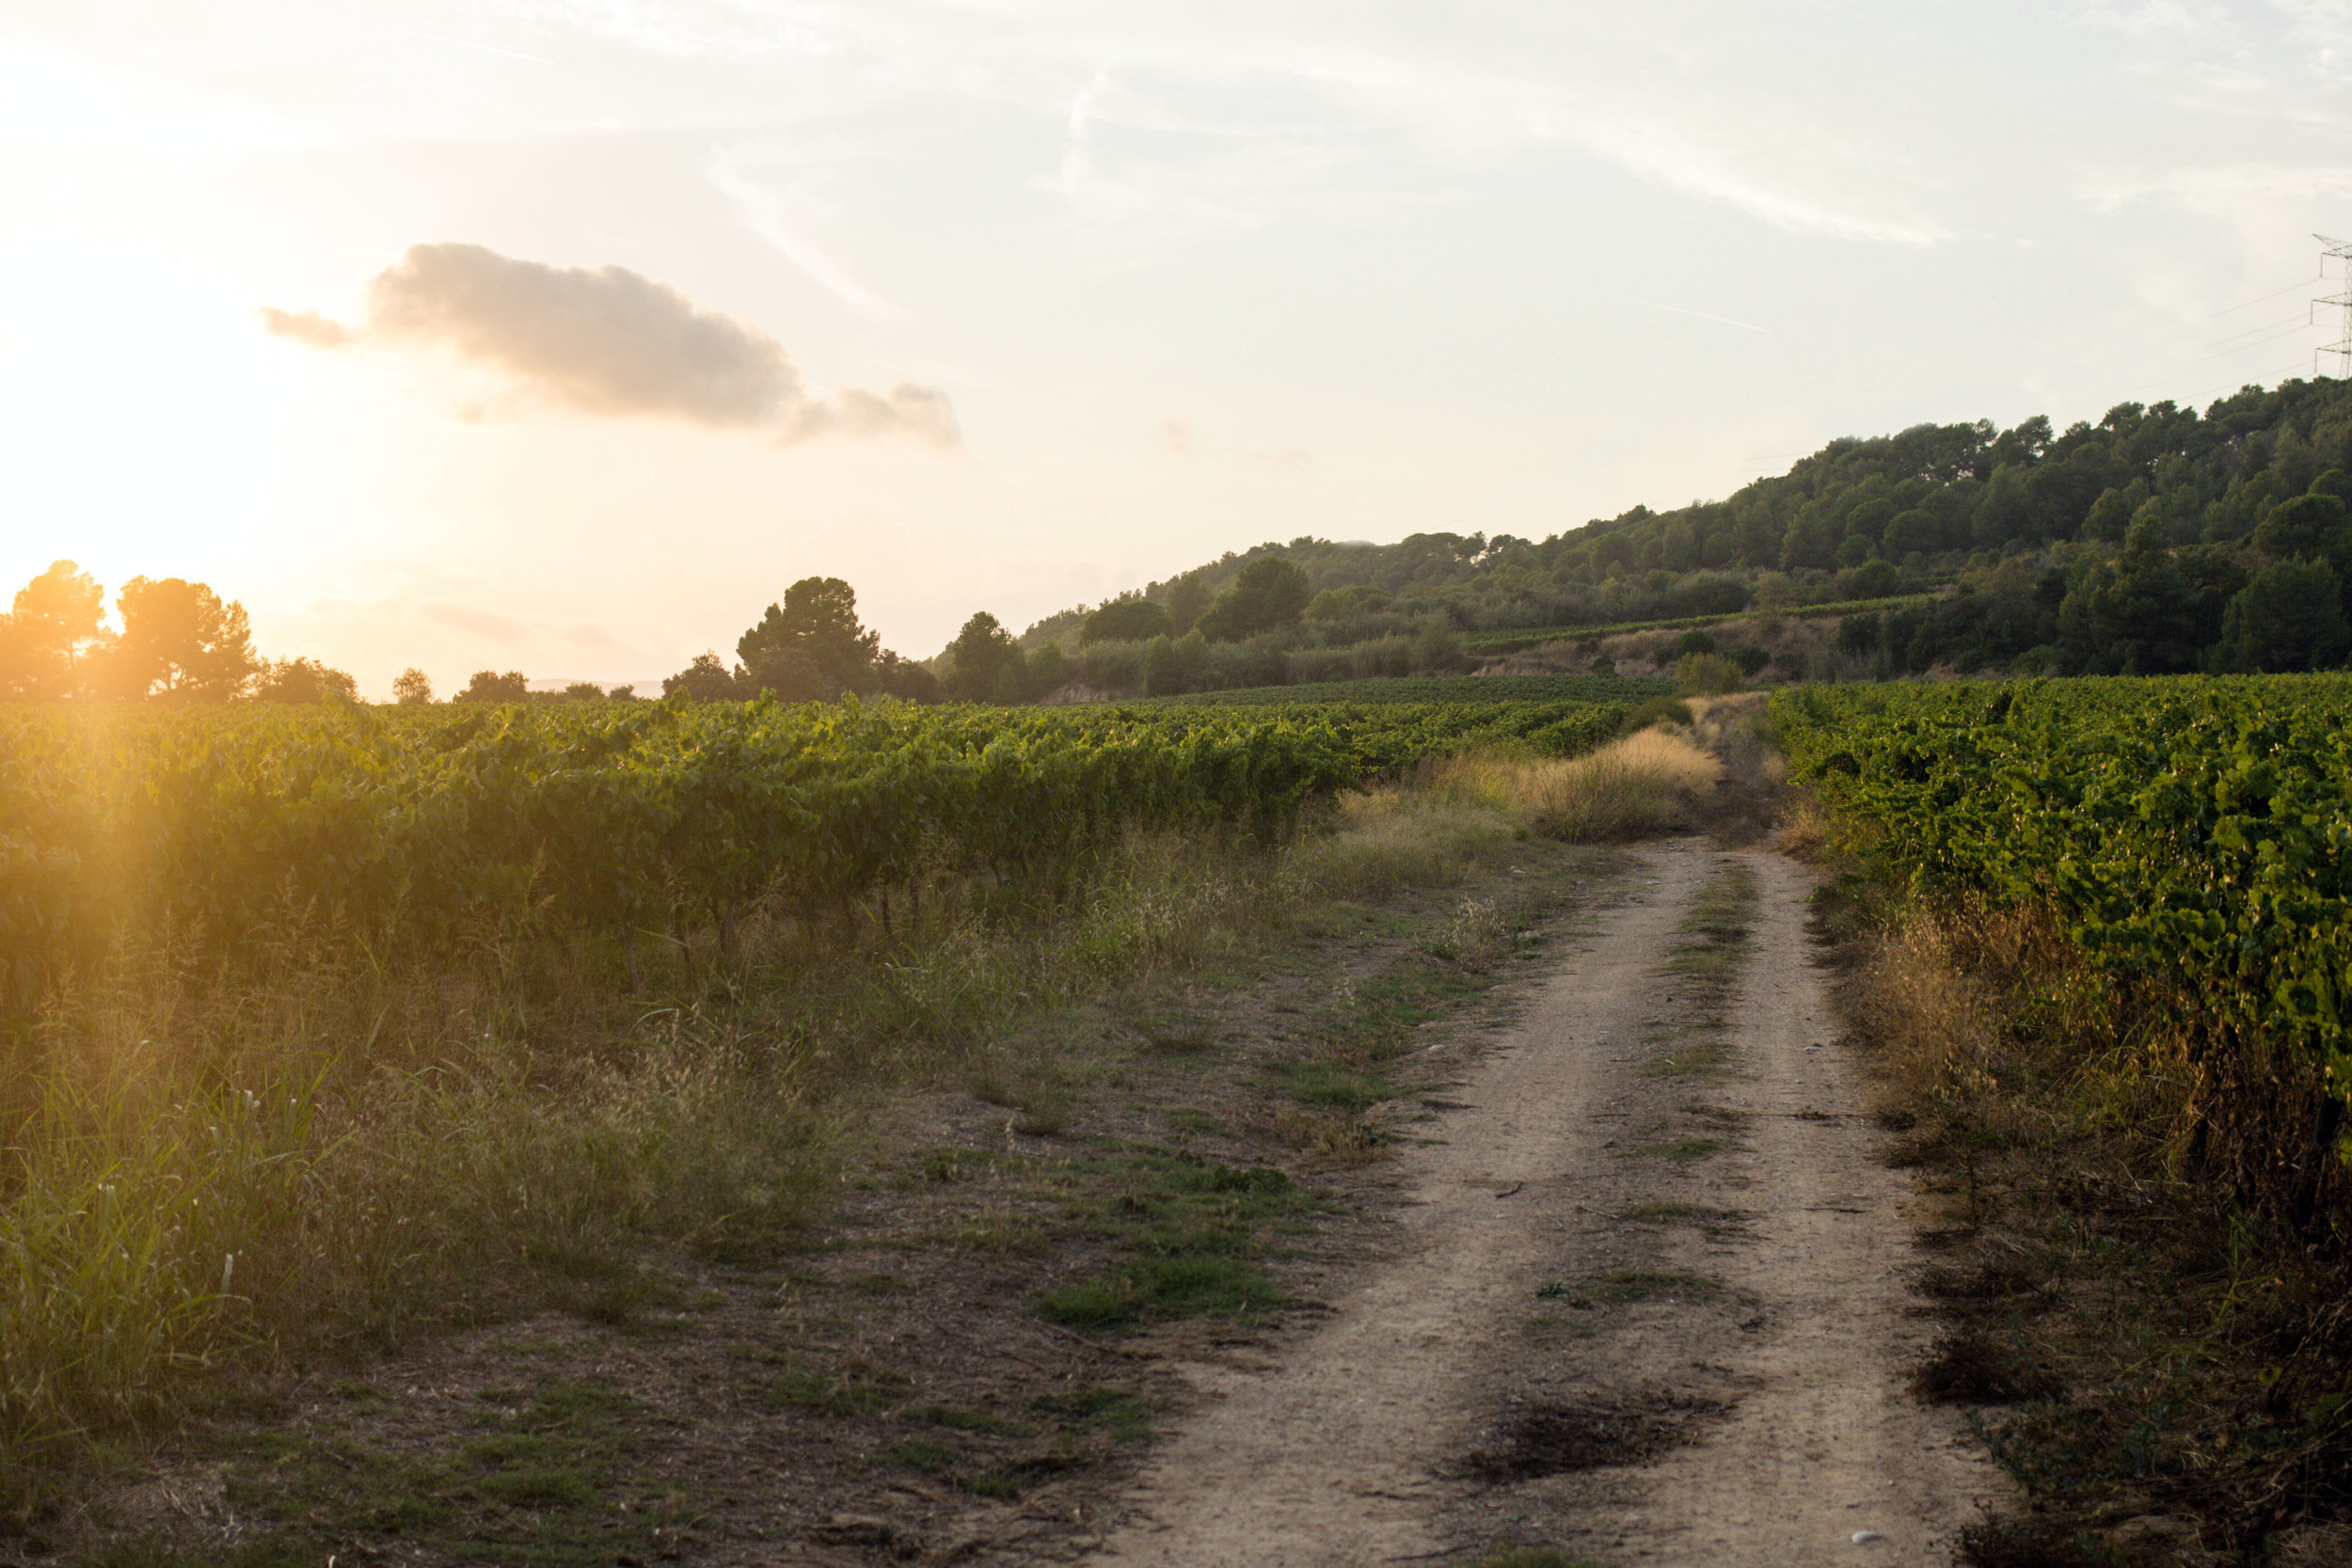 Sunset on a road through the vineyard